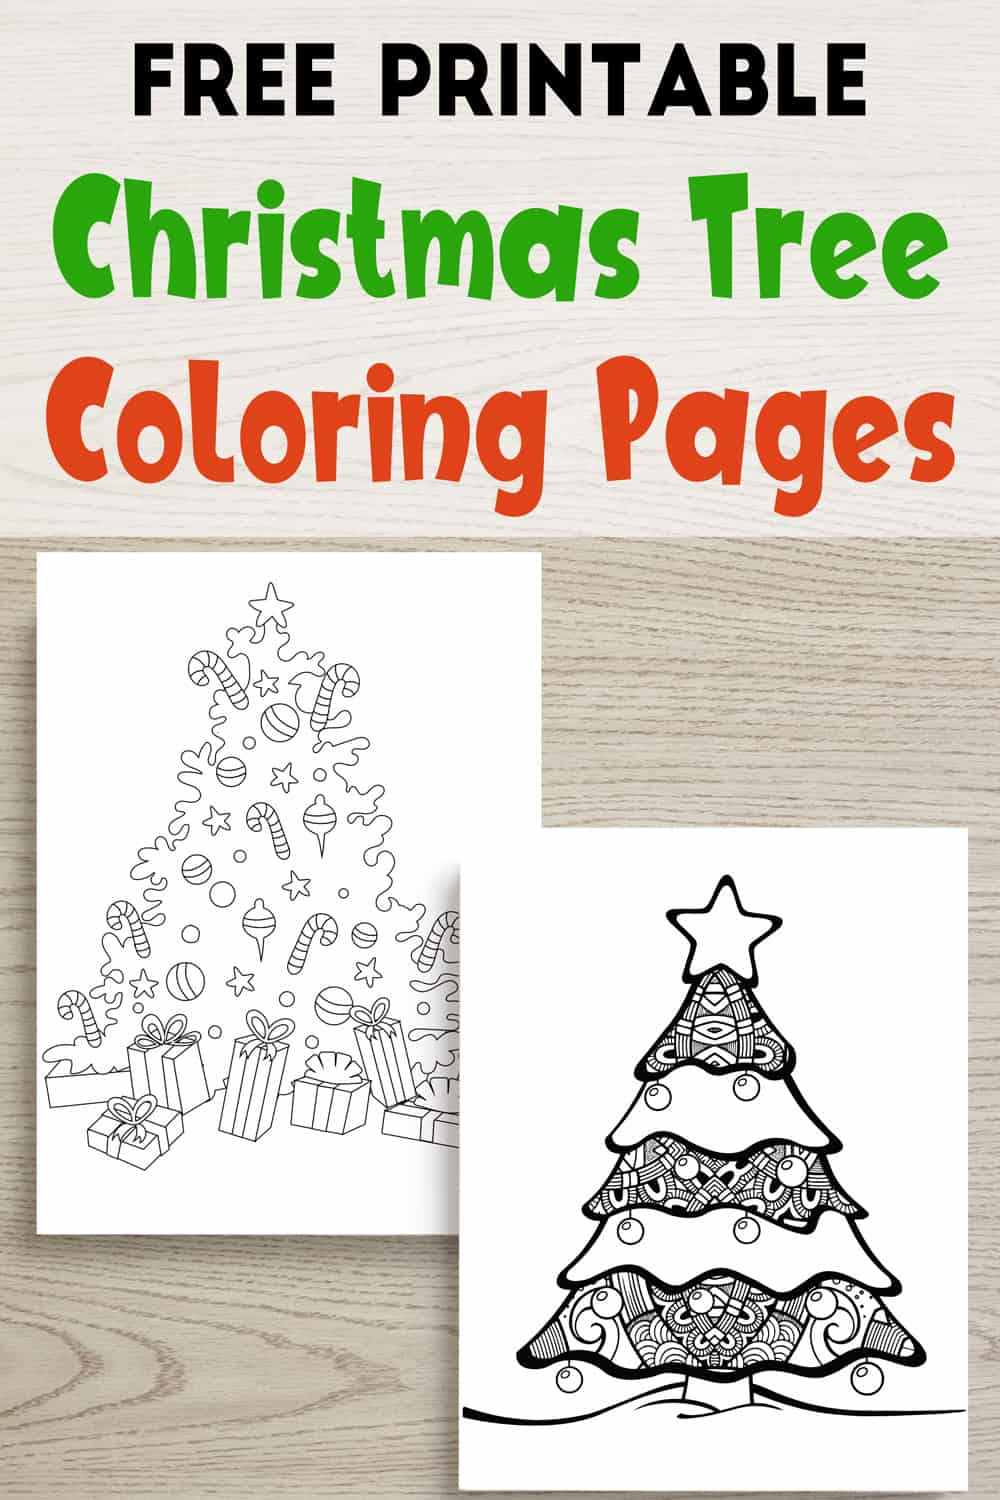 photograph regarding Printable Christmas Tree Pictures referred to as No cost Printable Xmas Tree Coloring Webpages - The Artisan Daily life